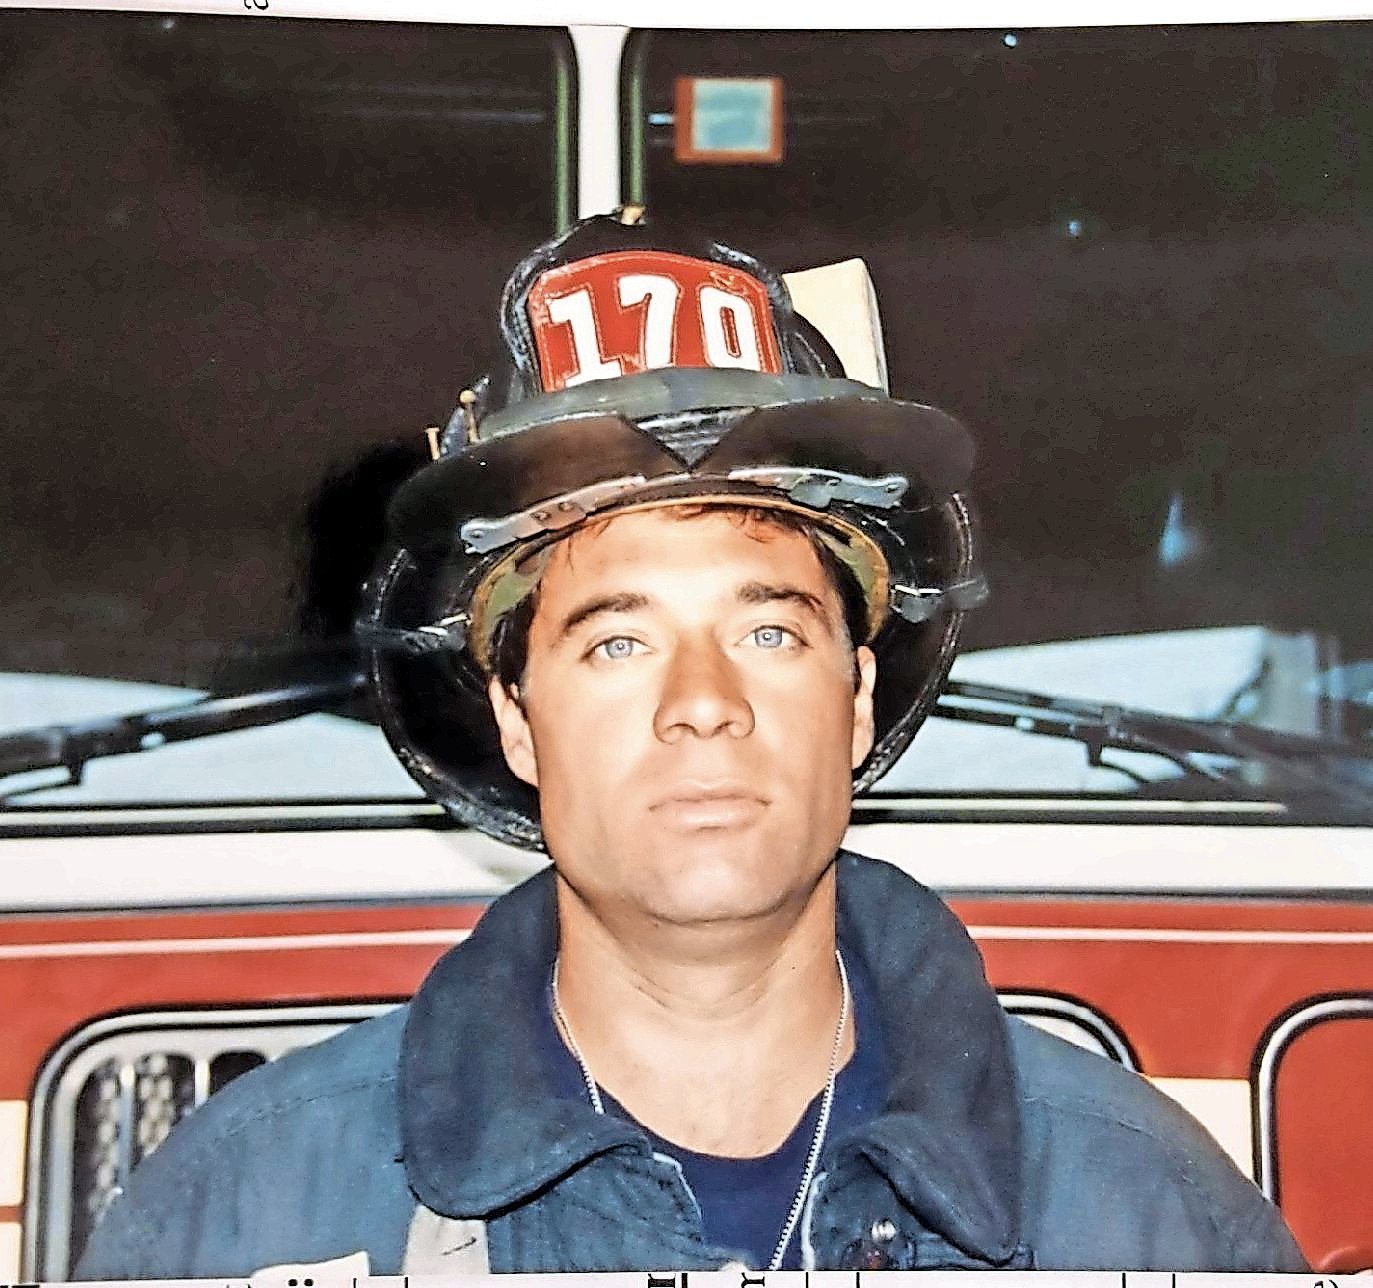 Moschella began his career with the FDNY in 1990.